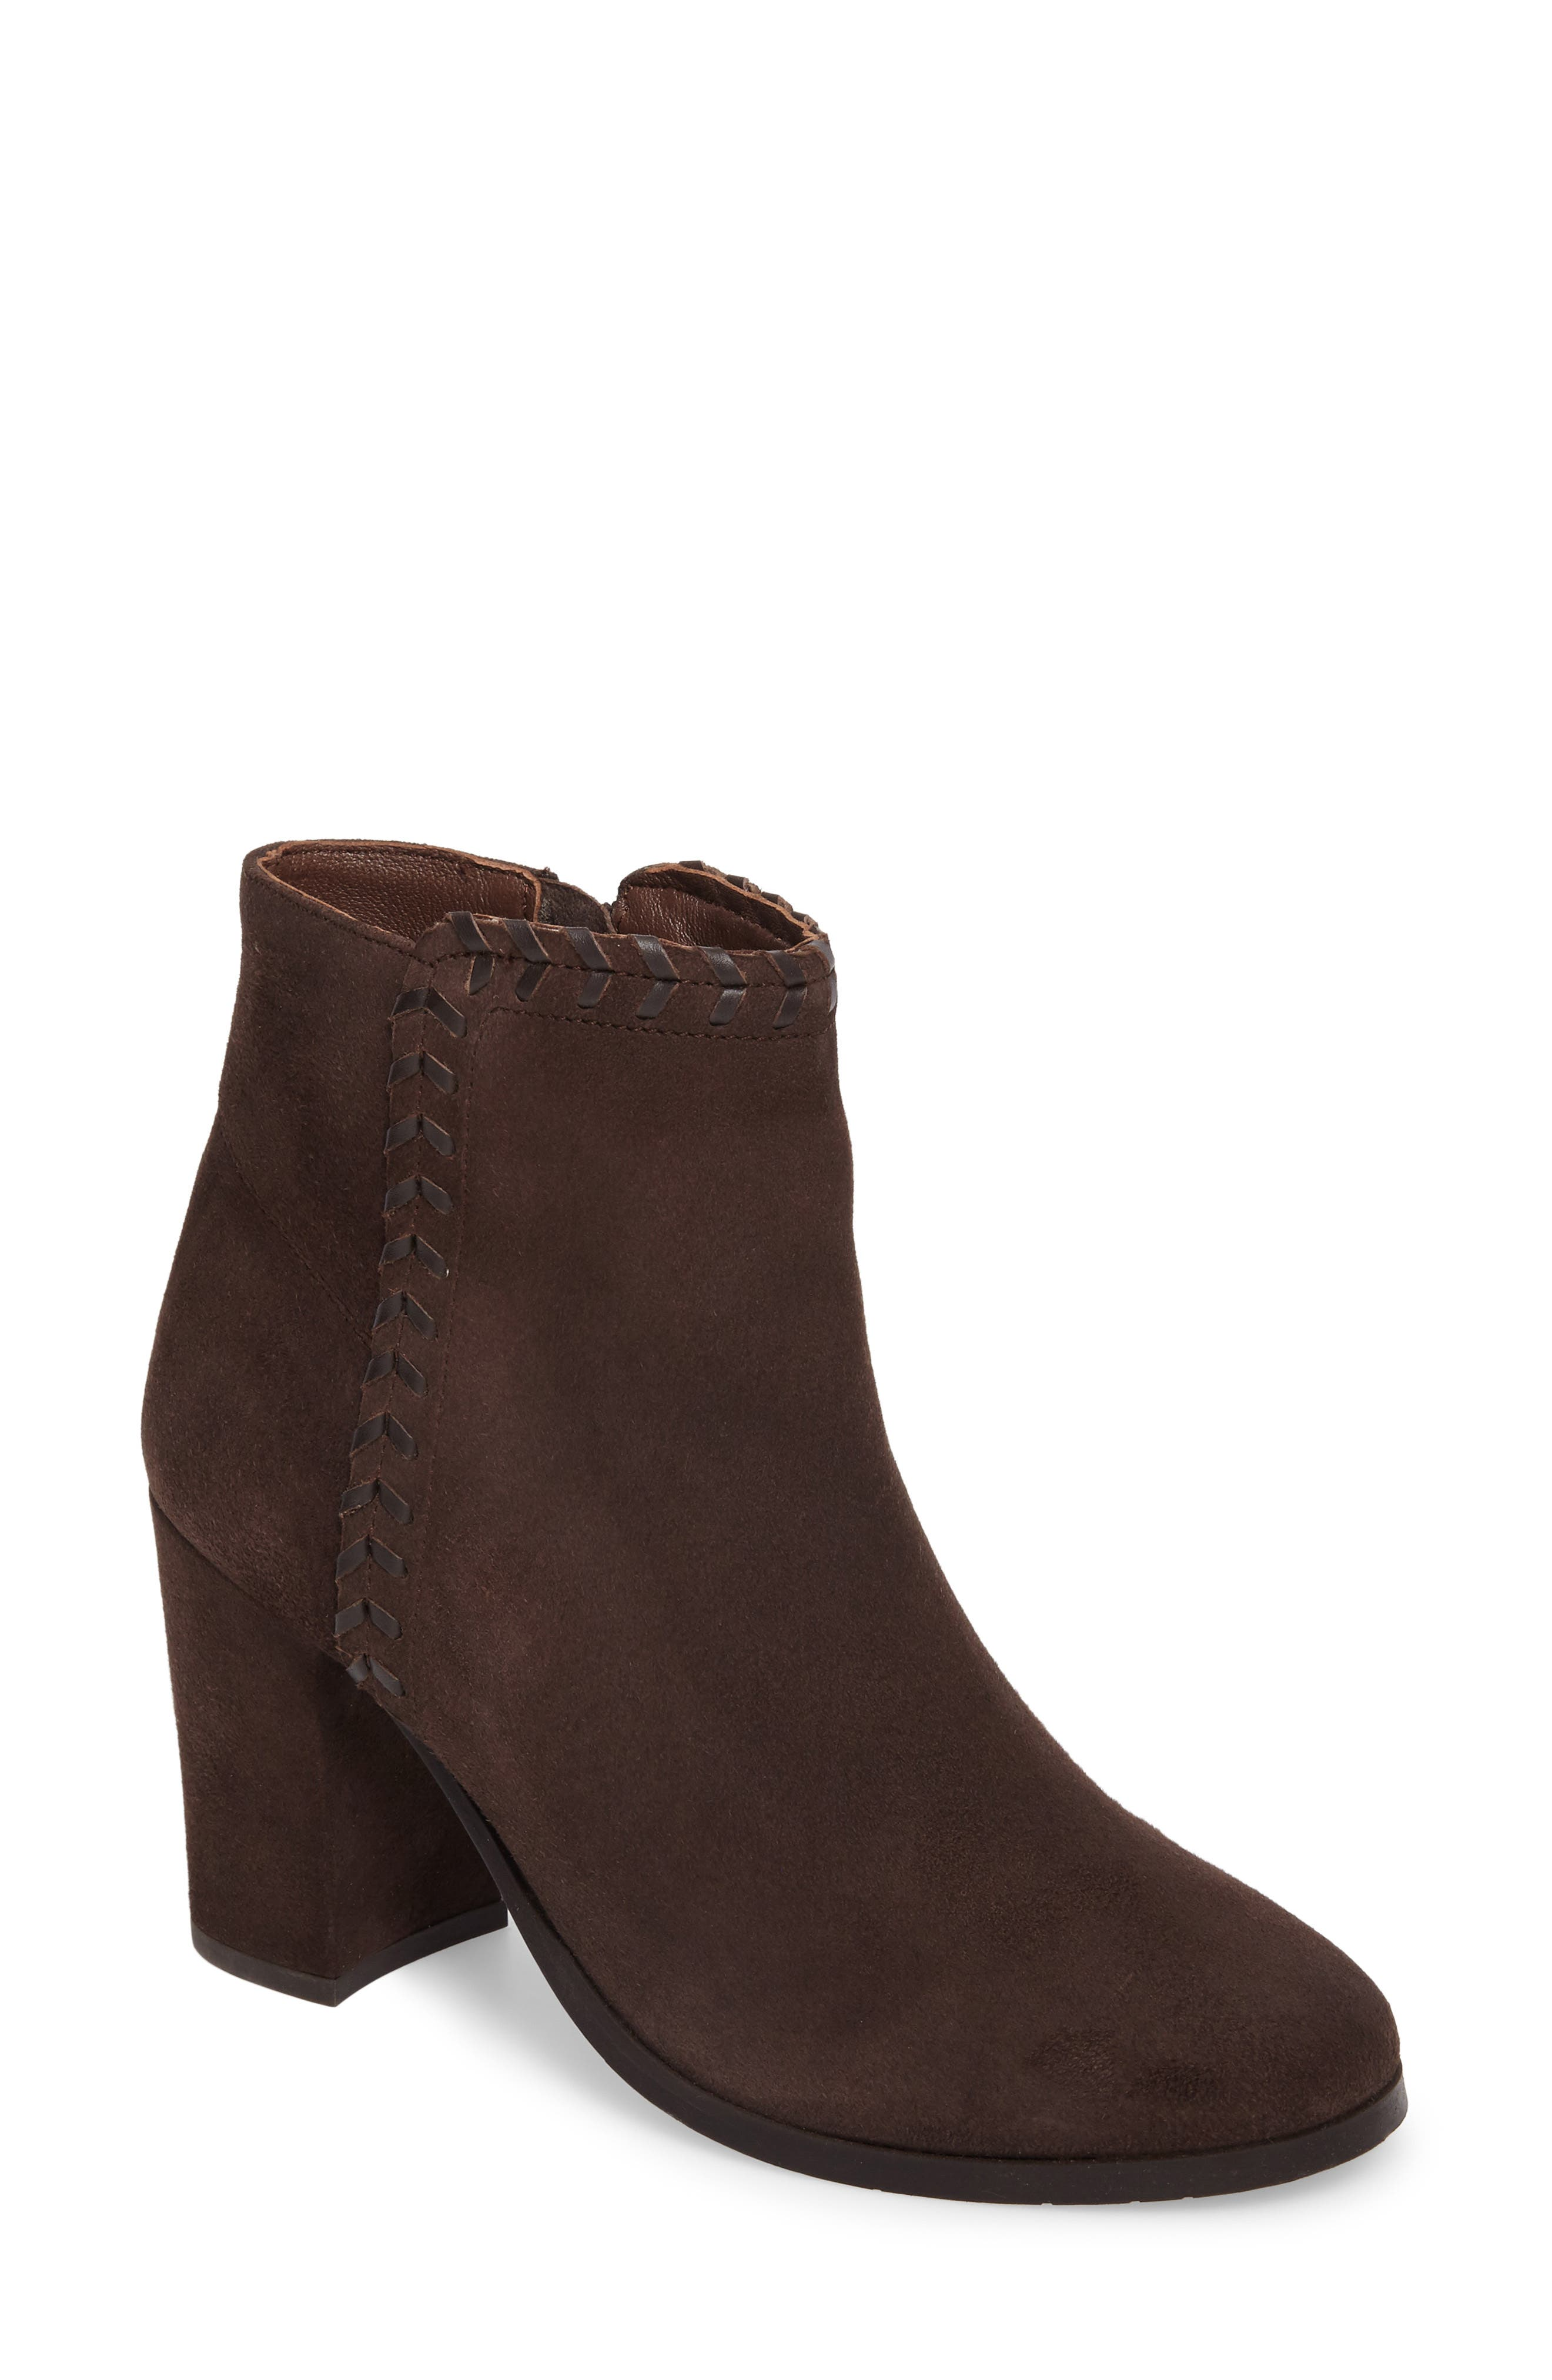 Heavenly Bootie,                         Main,                         color, Taupe Suede